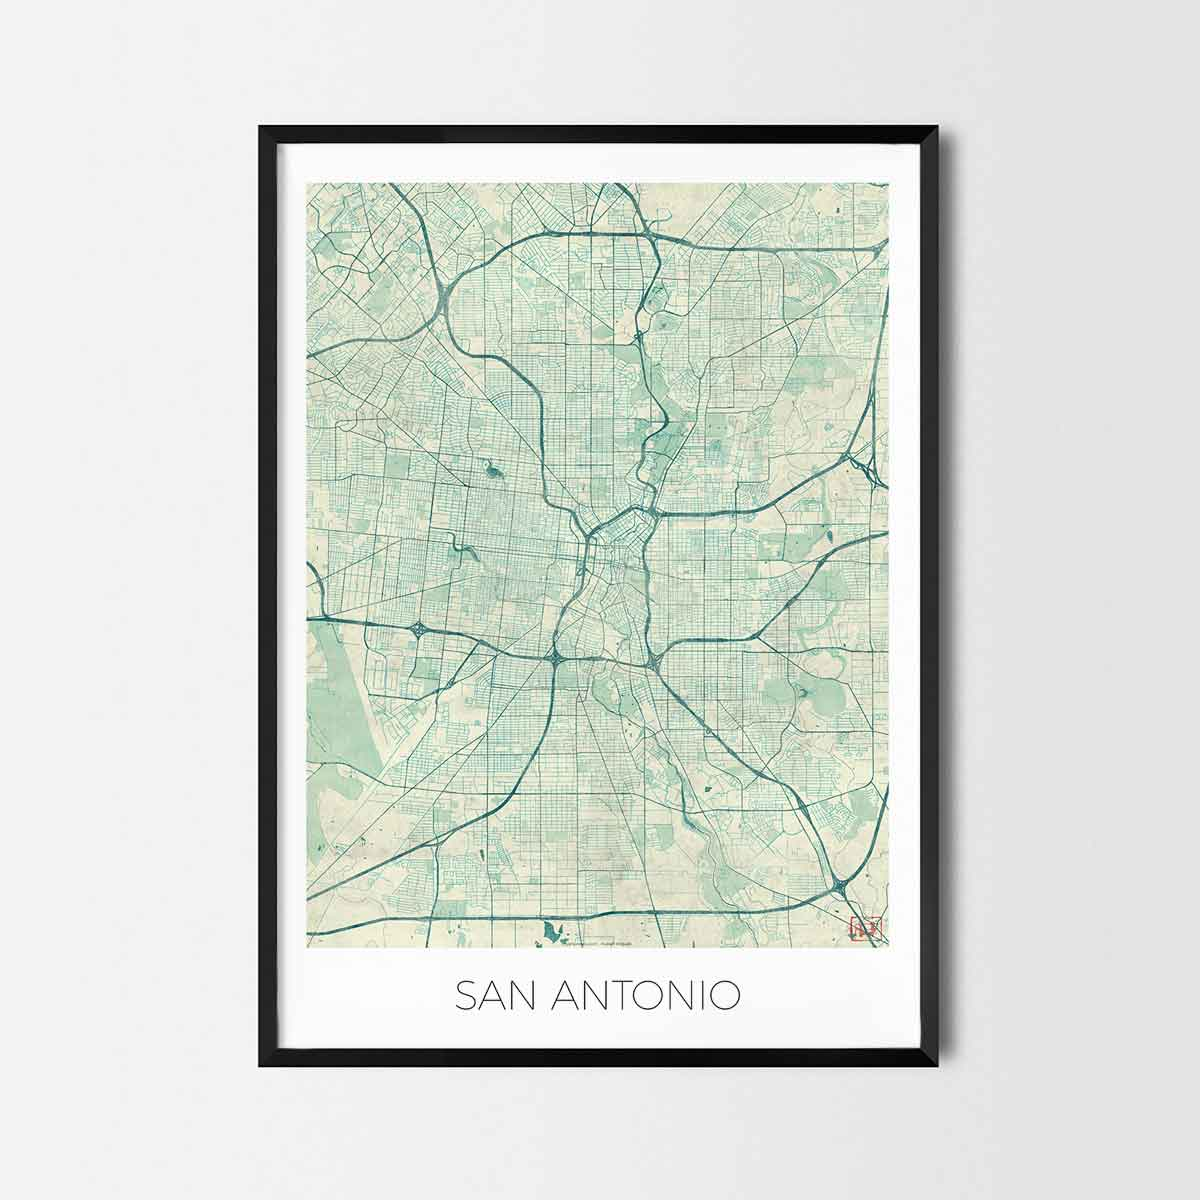 San Antonio art posters - City Art Map Posters and Prints on bandera city map, lewisville city map, north dallas city map, seattle city map, port st lucie city map, texas map, boston city map, bexar county zoning map, st george city map, minneapolis st paul city map, alamo heights city map, albuquerque city map, santa fe city map, schertz city map, lockhart city map, cabo san lucas city map, greater phoenix city map, richardson city map, el centro city map, pierre city map,